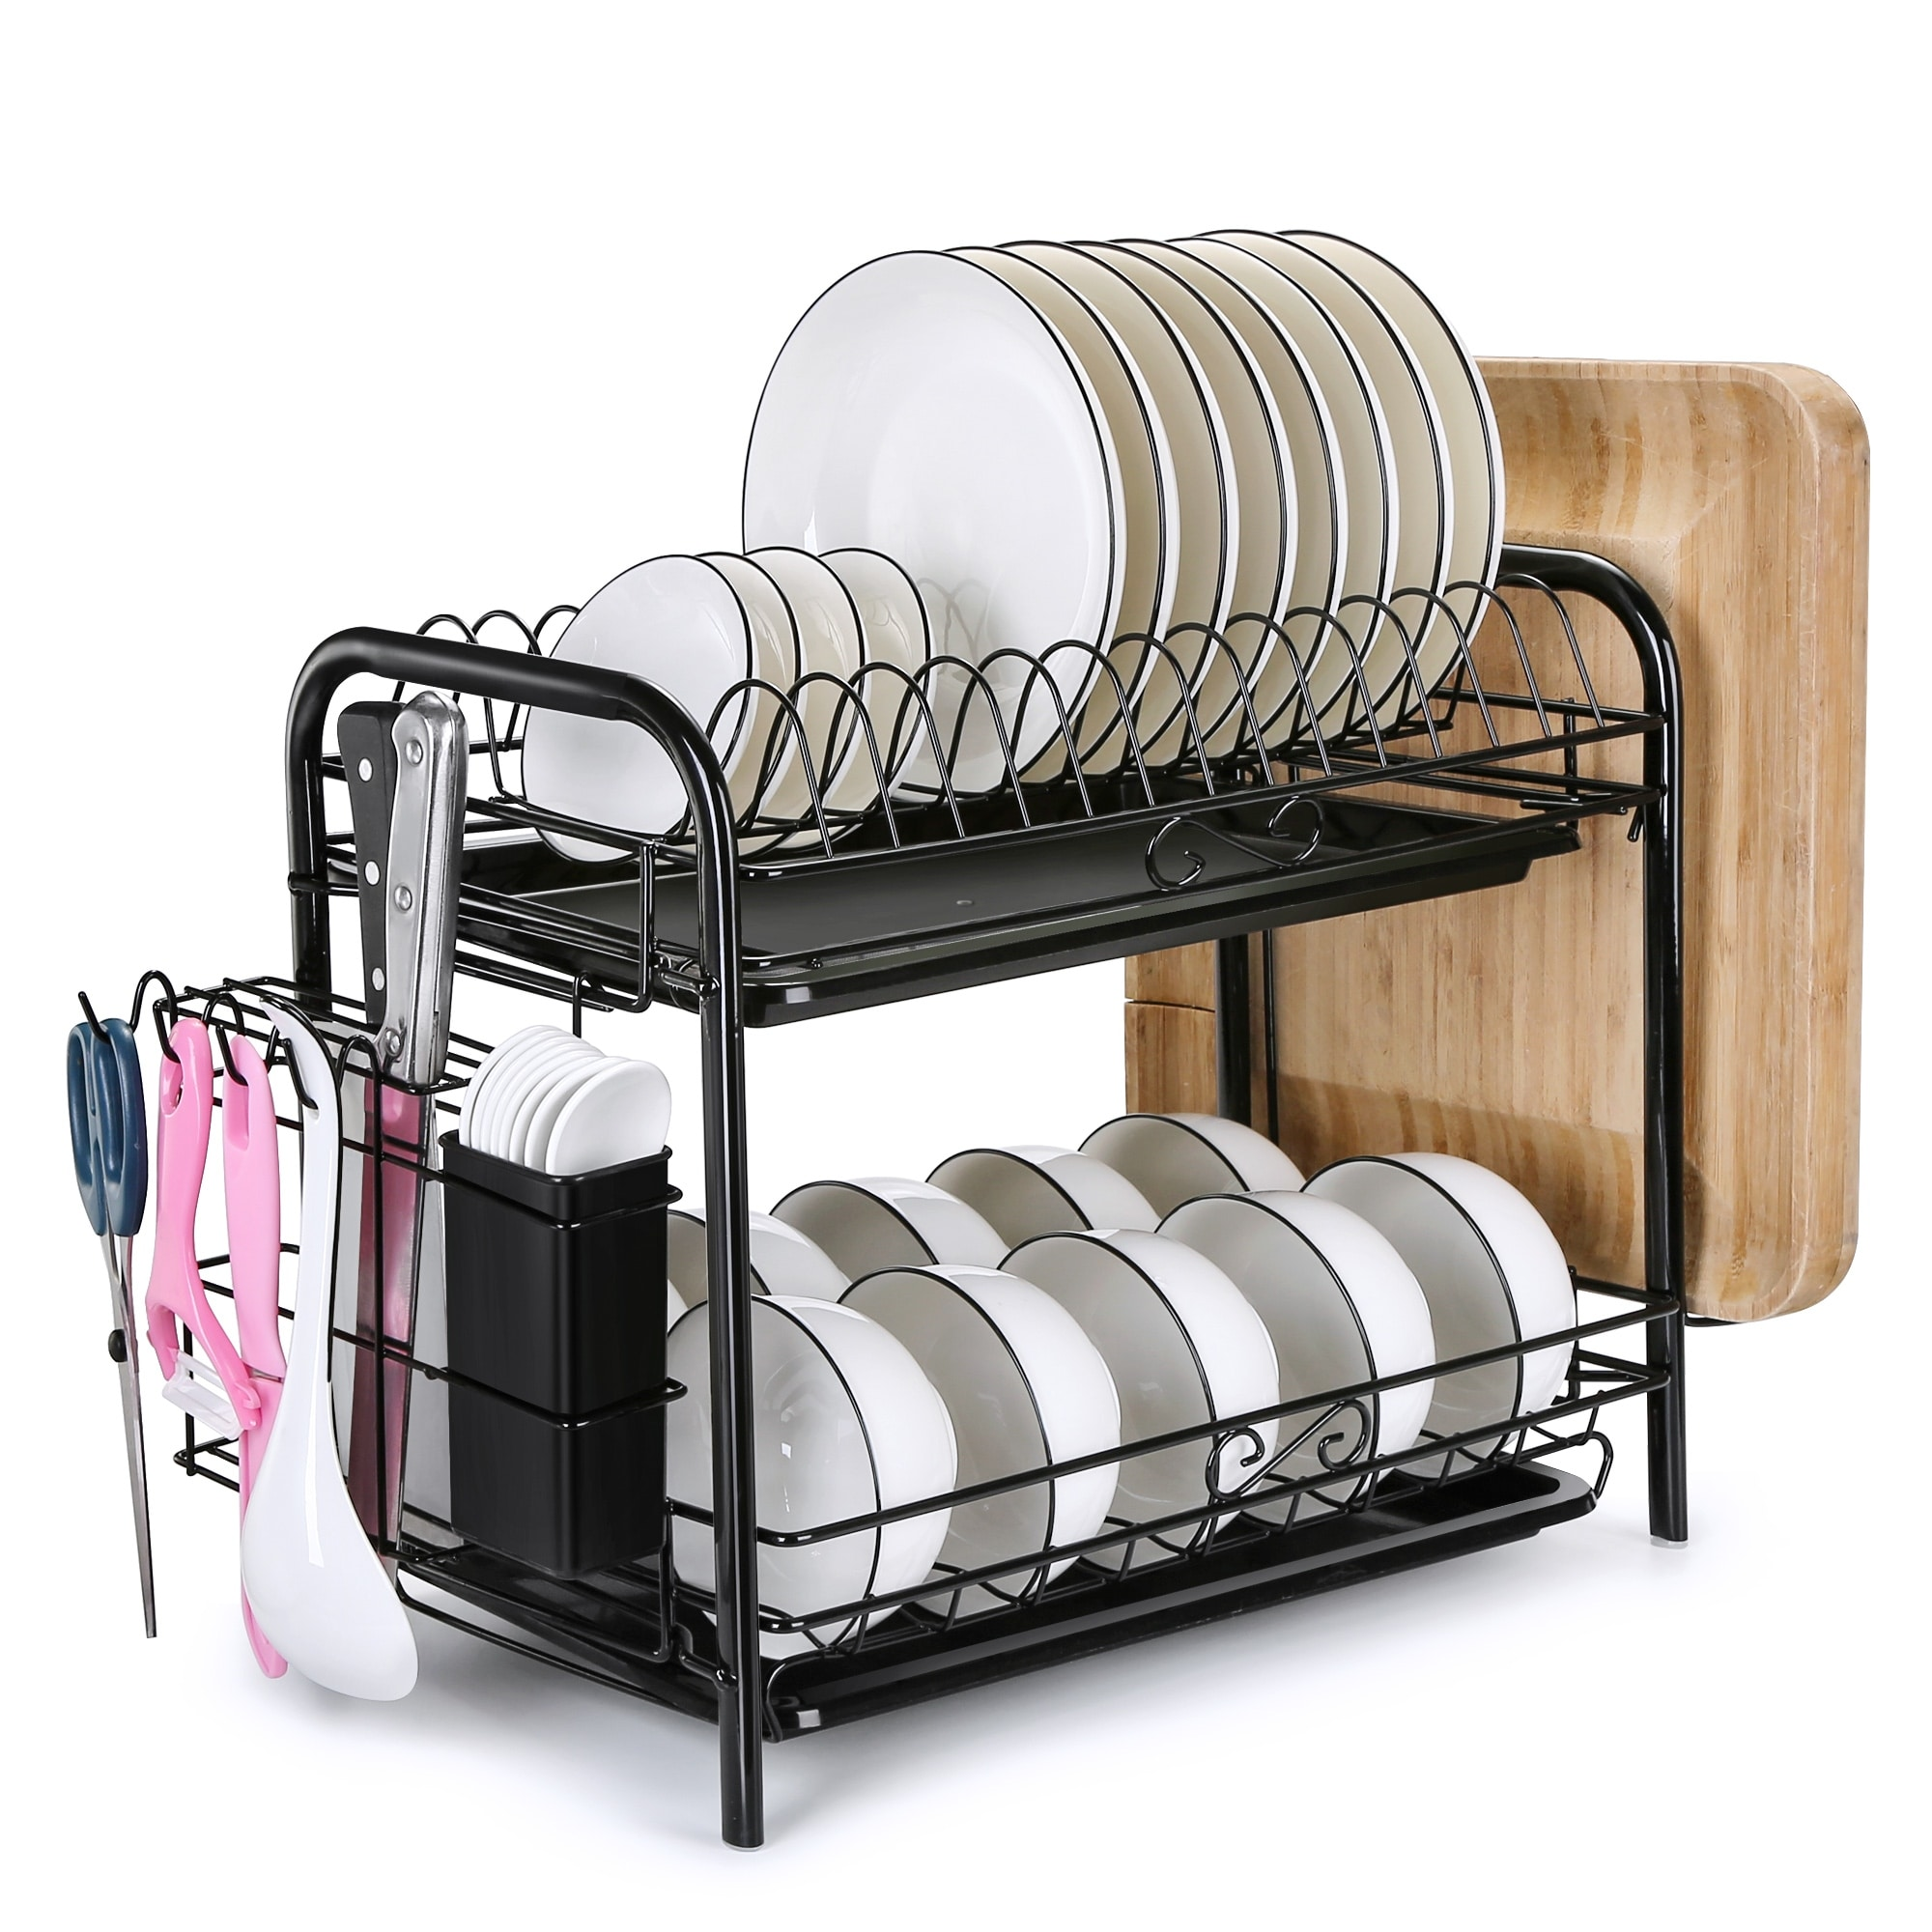 Shop For Odoland 2 Tiers Dish Drying Rack 2 Tier Chrome Dish Drainer Rack Kitchen Storage With Draining Board And Cutlery Cup 22 M Get Free Delivery On Everything At Overstock Your Online Kitchen Dining Store Get 5 In Rewards With